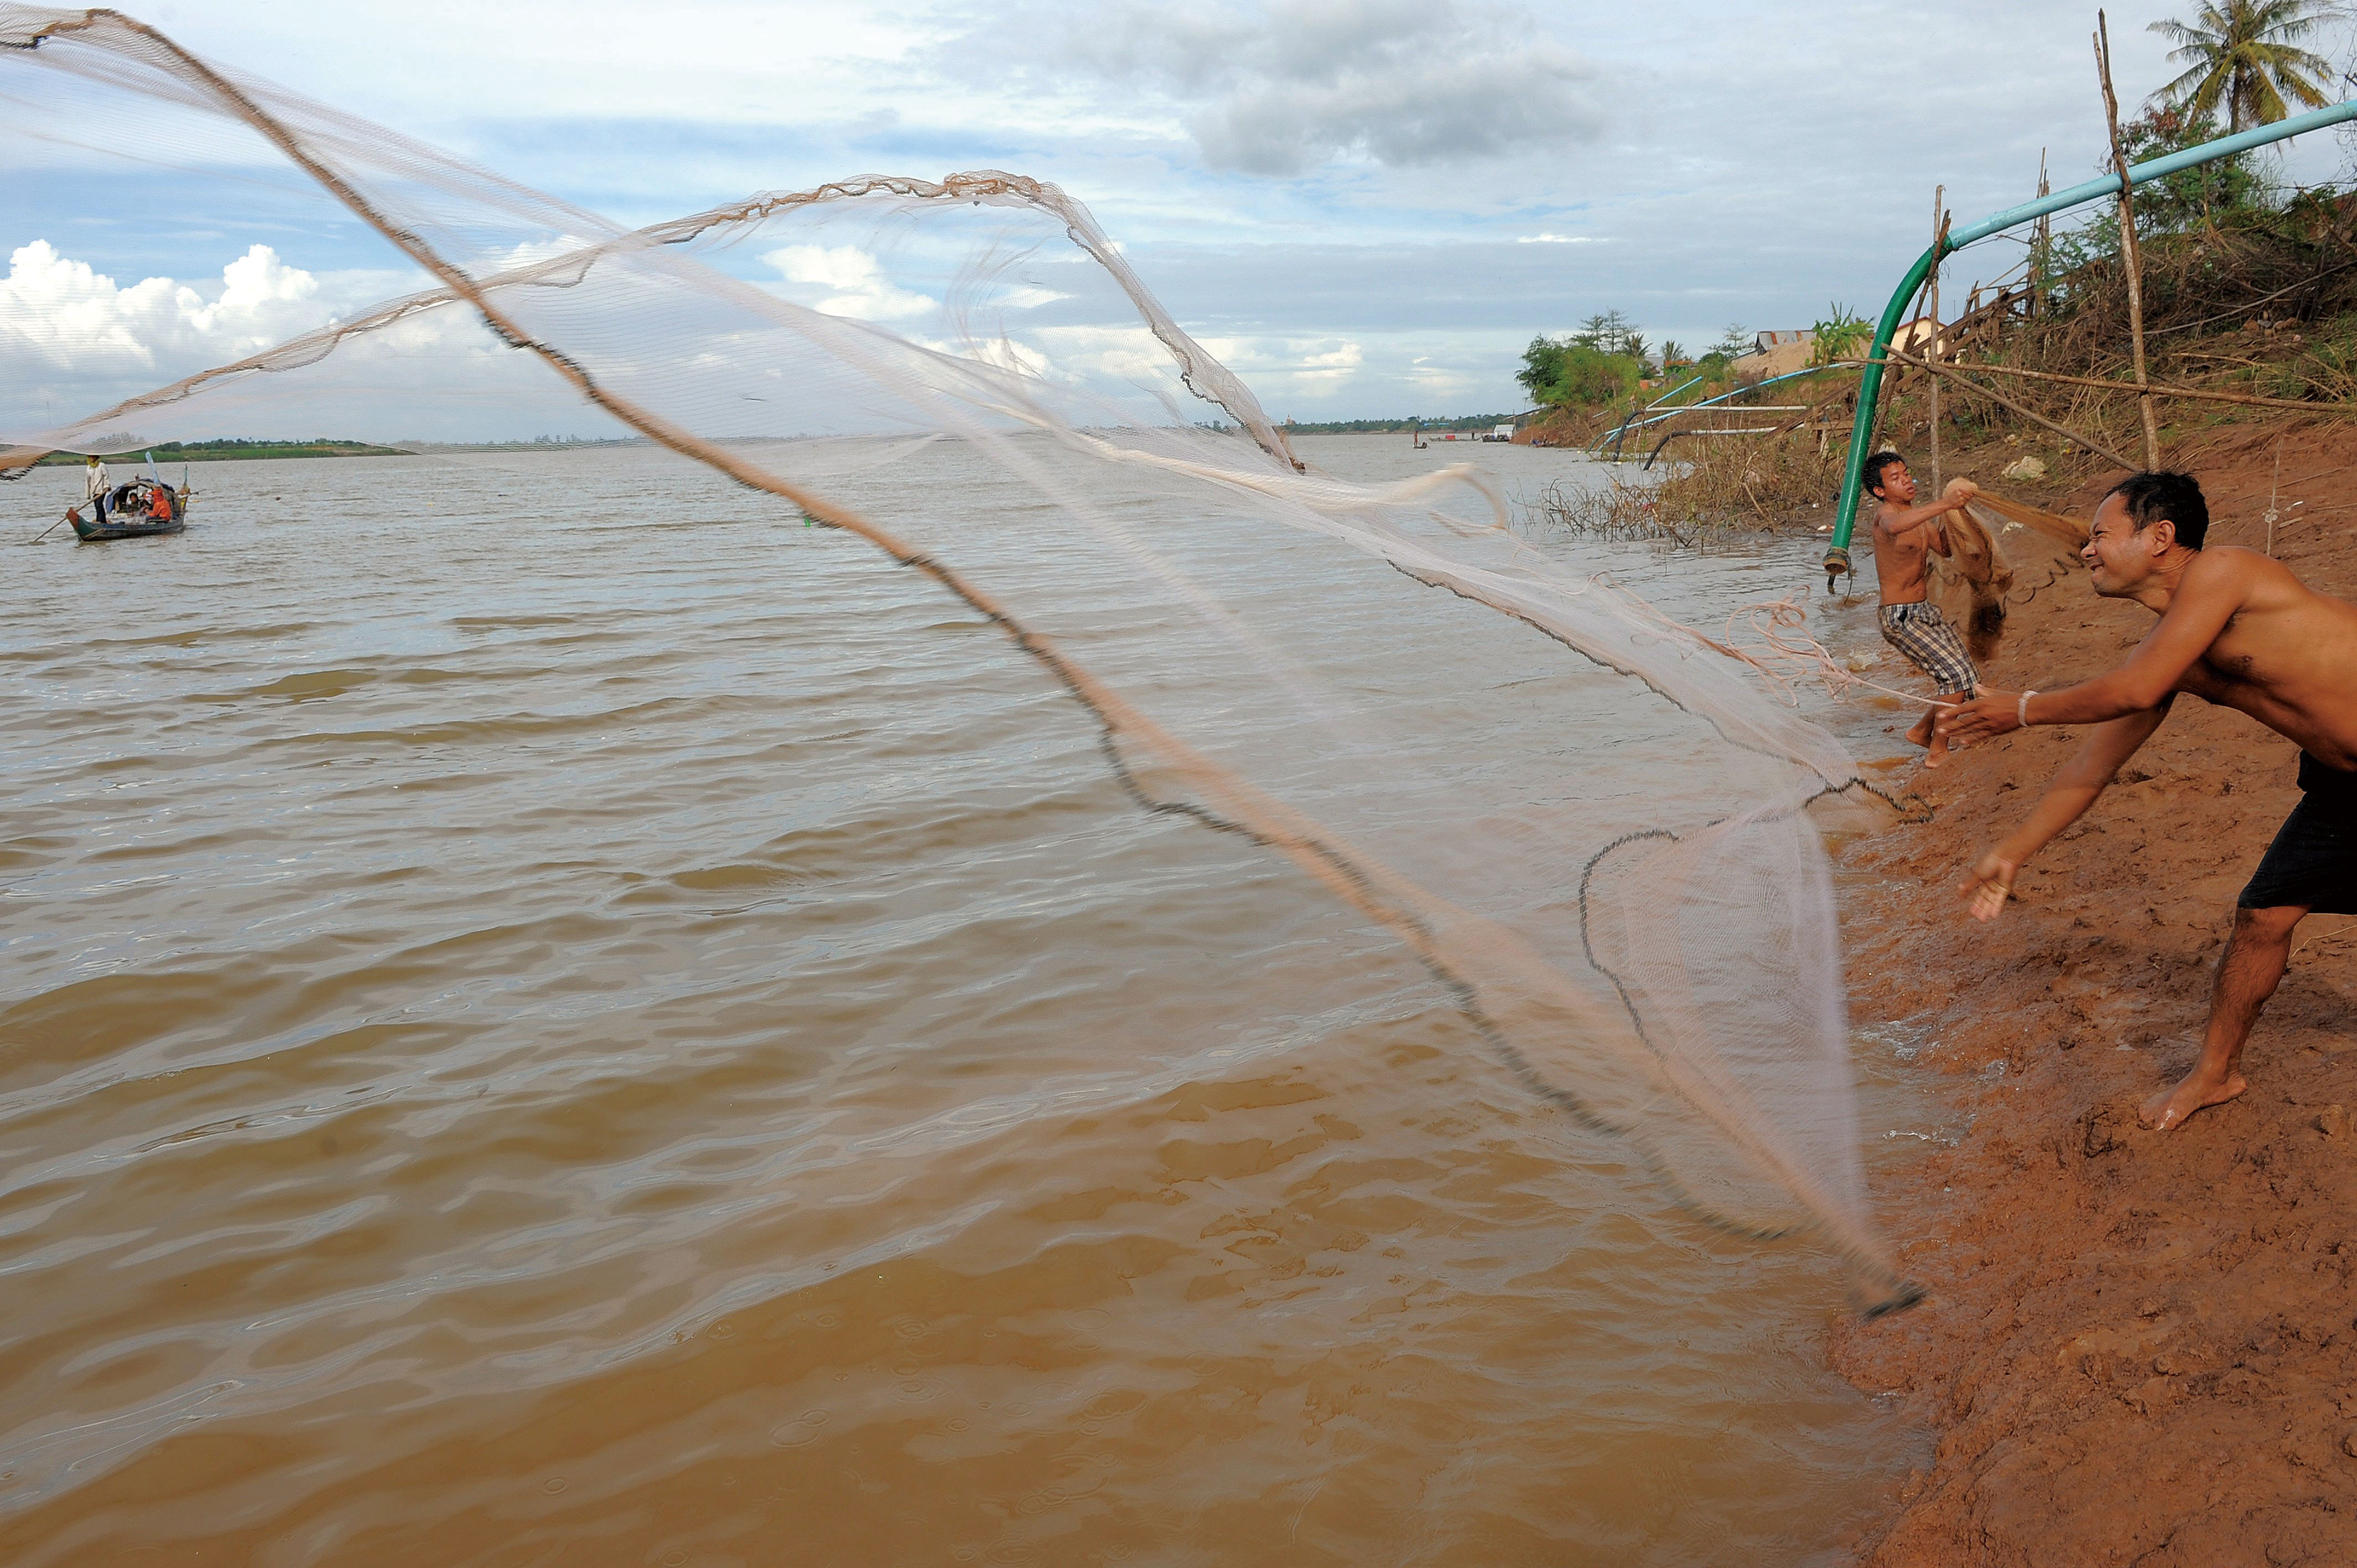 A Cambodian man throws his net into the Mekong river on the outskirts of Phnom Penh on December 8, 2011. (Agence France-Presse)